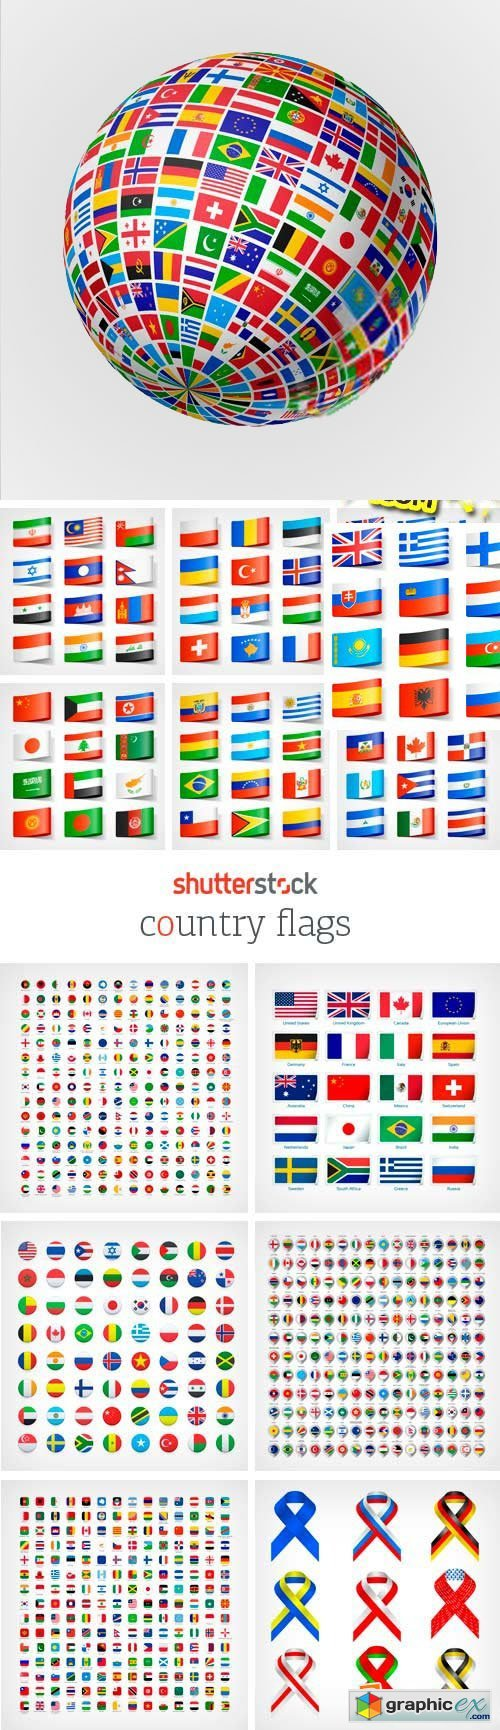 Amazing SS - Country Flags, 25xEPS